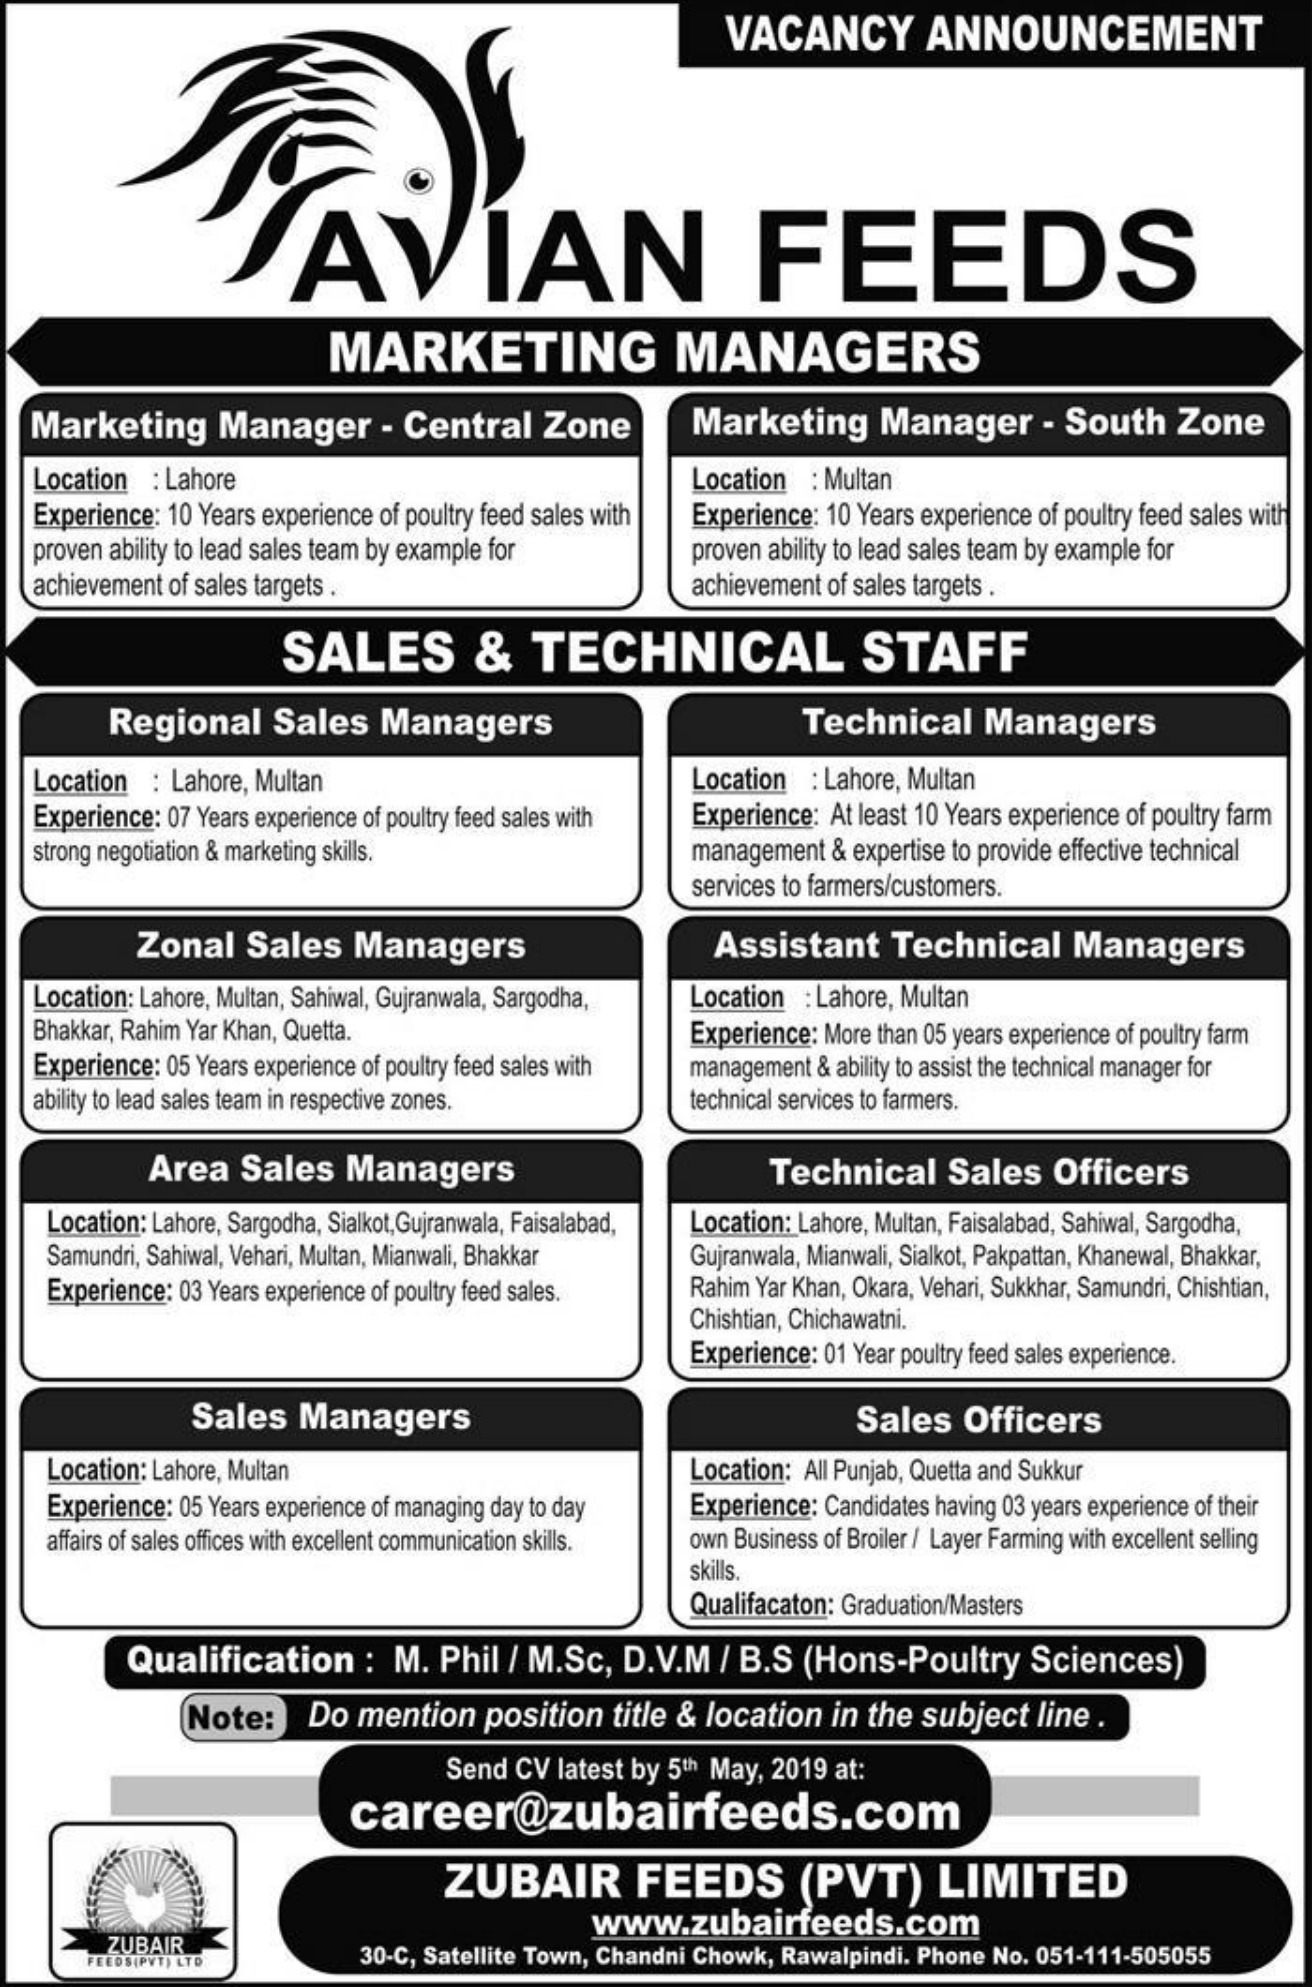 Zubair Feeds Pvt Ltd Jobs 2019 Avian Feeds Latest